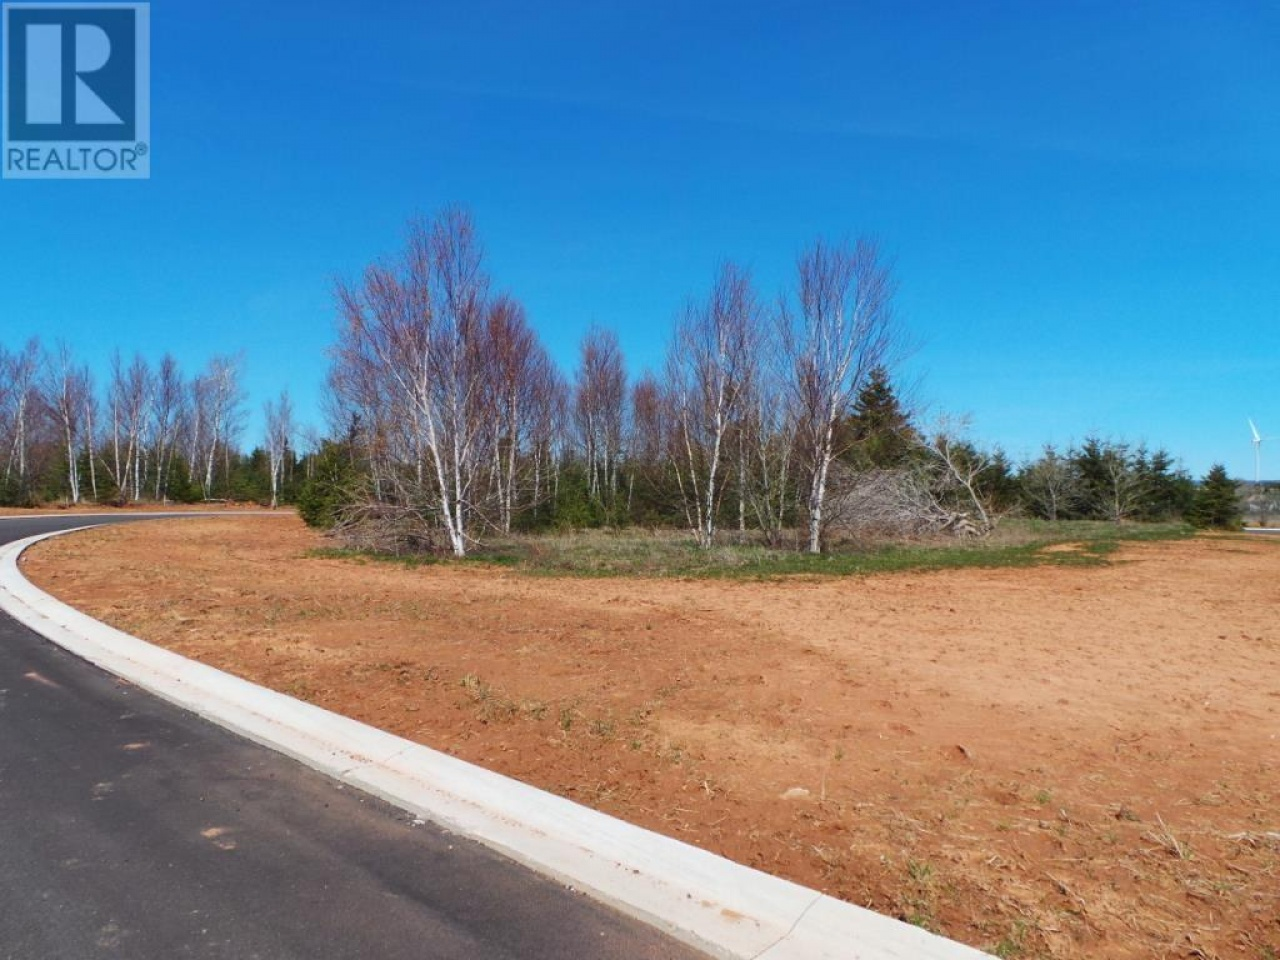 Lot 20-2 Waterview HeightsLot 20-2 Waterview Heights, Summerside, Prince Edward Island C1N6H5, ,Vacant Land,For Sale,Lot 20-2 Waterview Heights,202111405